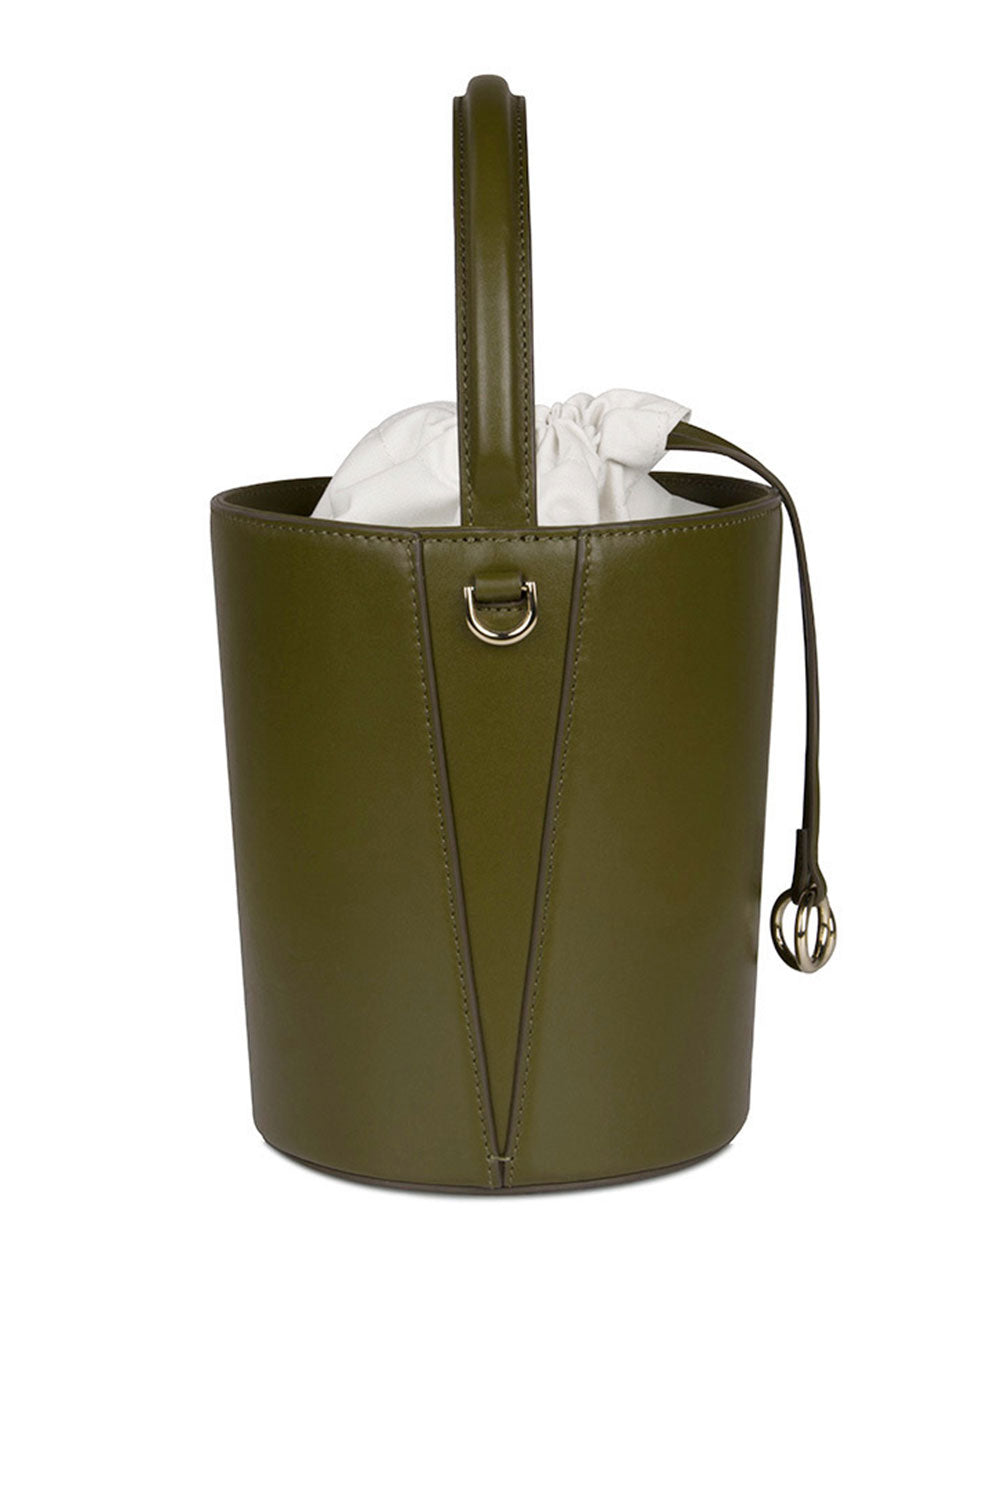 LEATHER KIWI BASKET BUCKET